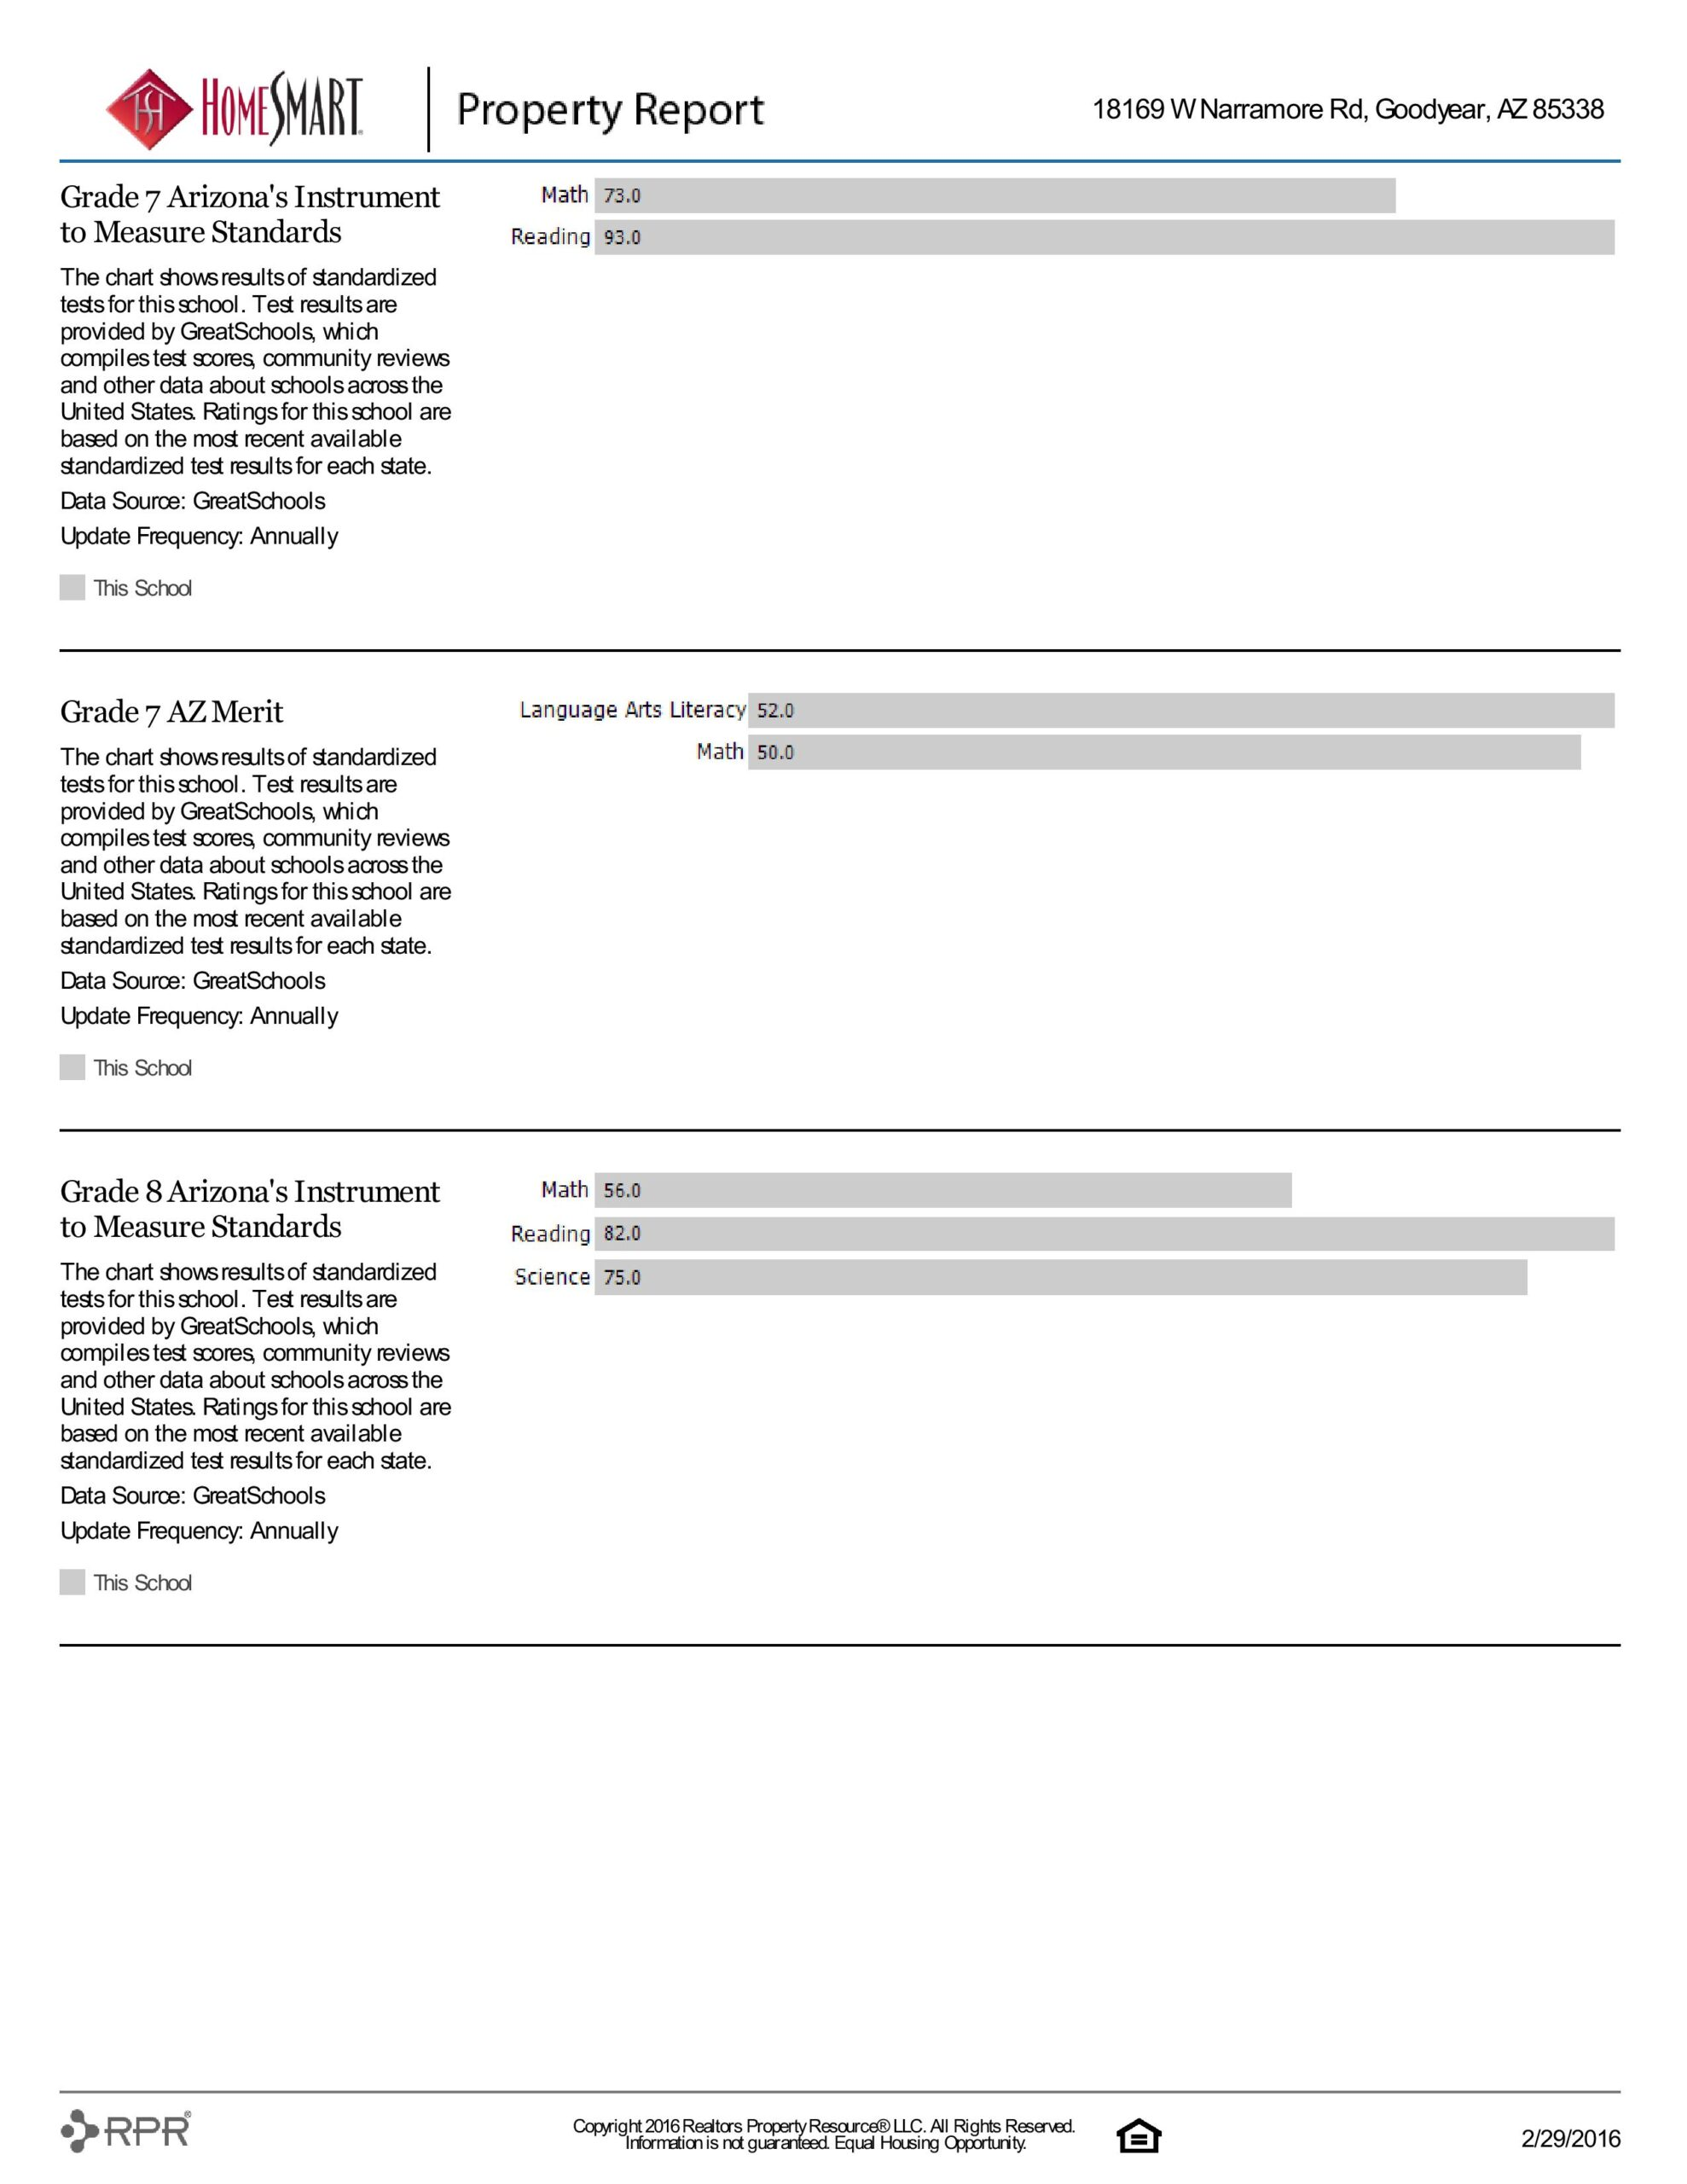 18169 W NARRAMORE RD PROPERTY REPORT-page-033